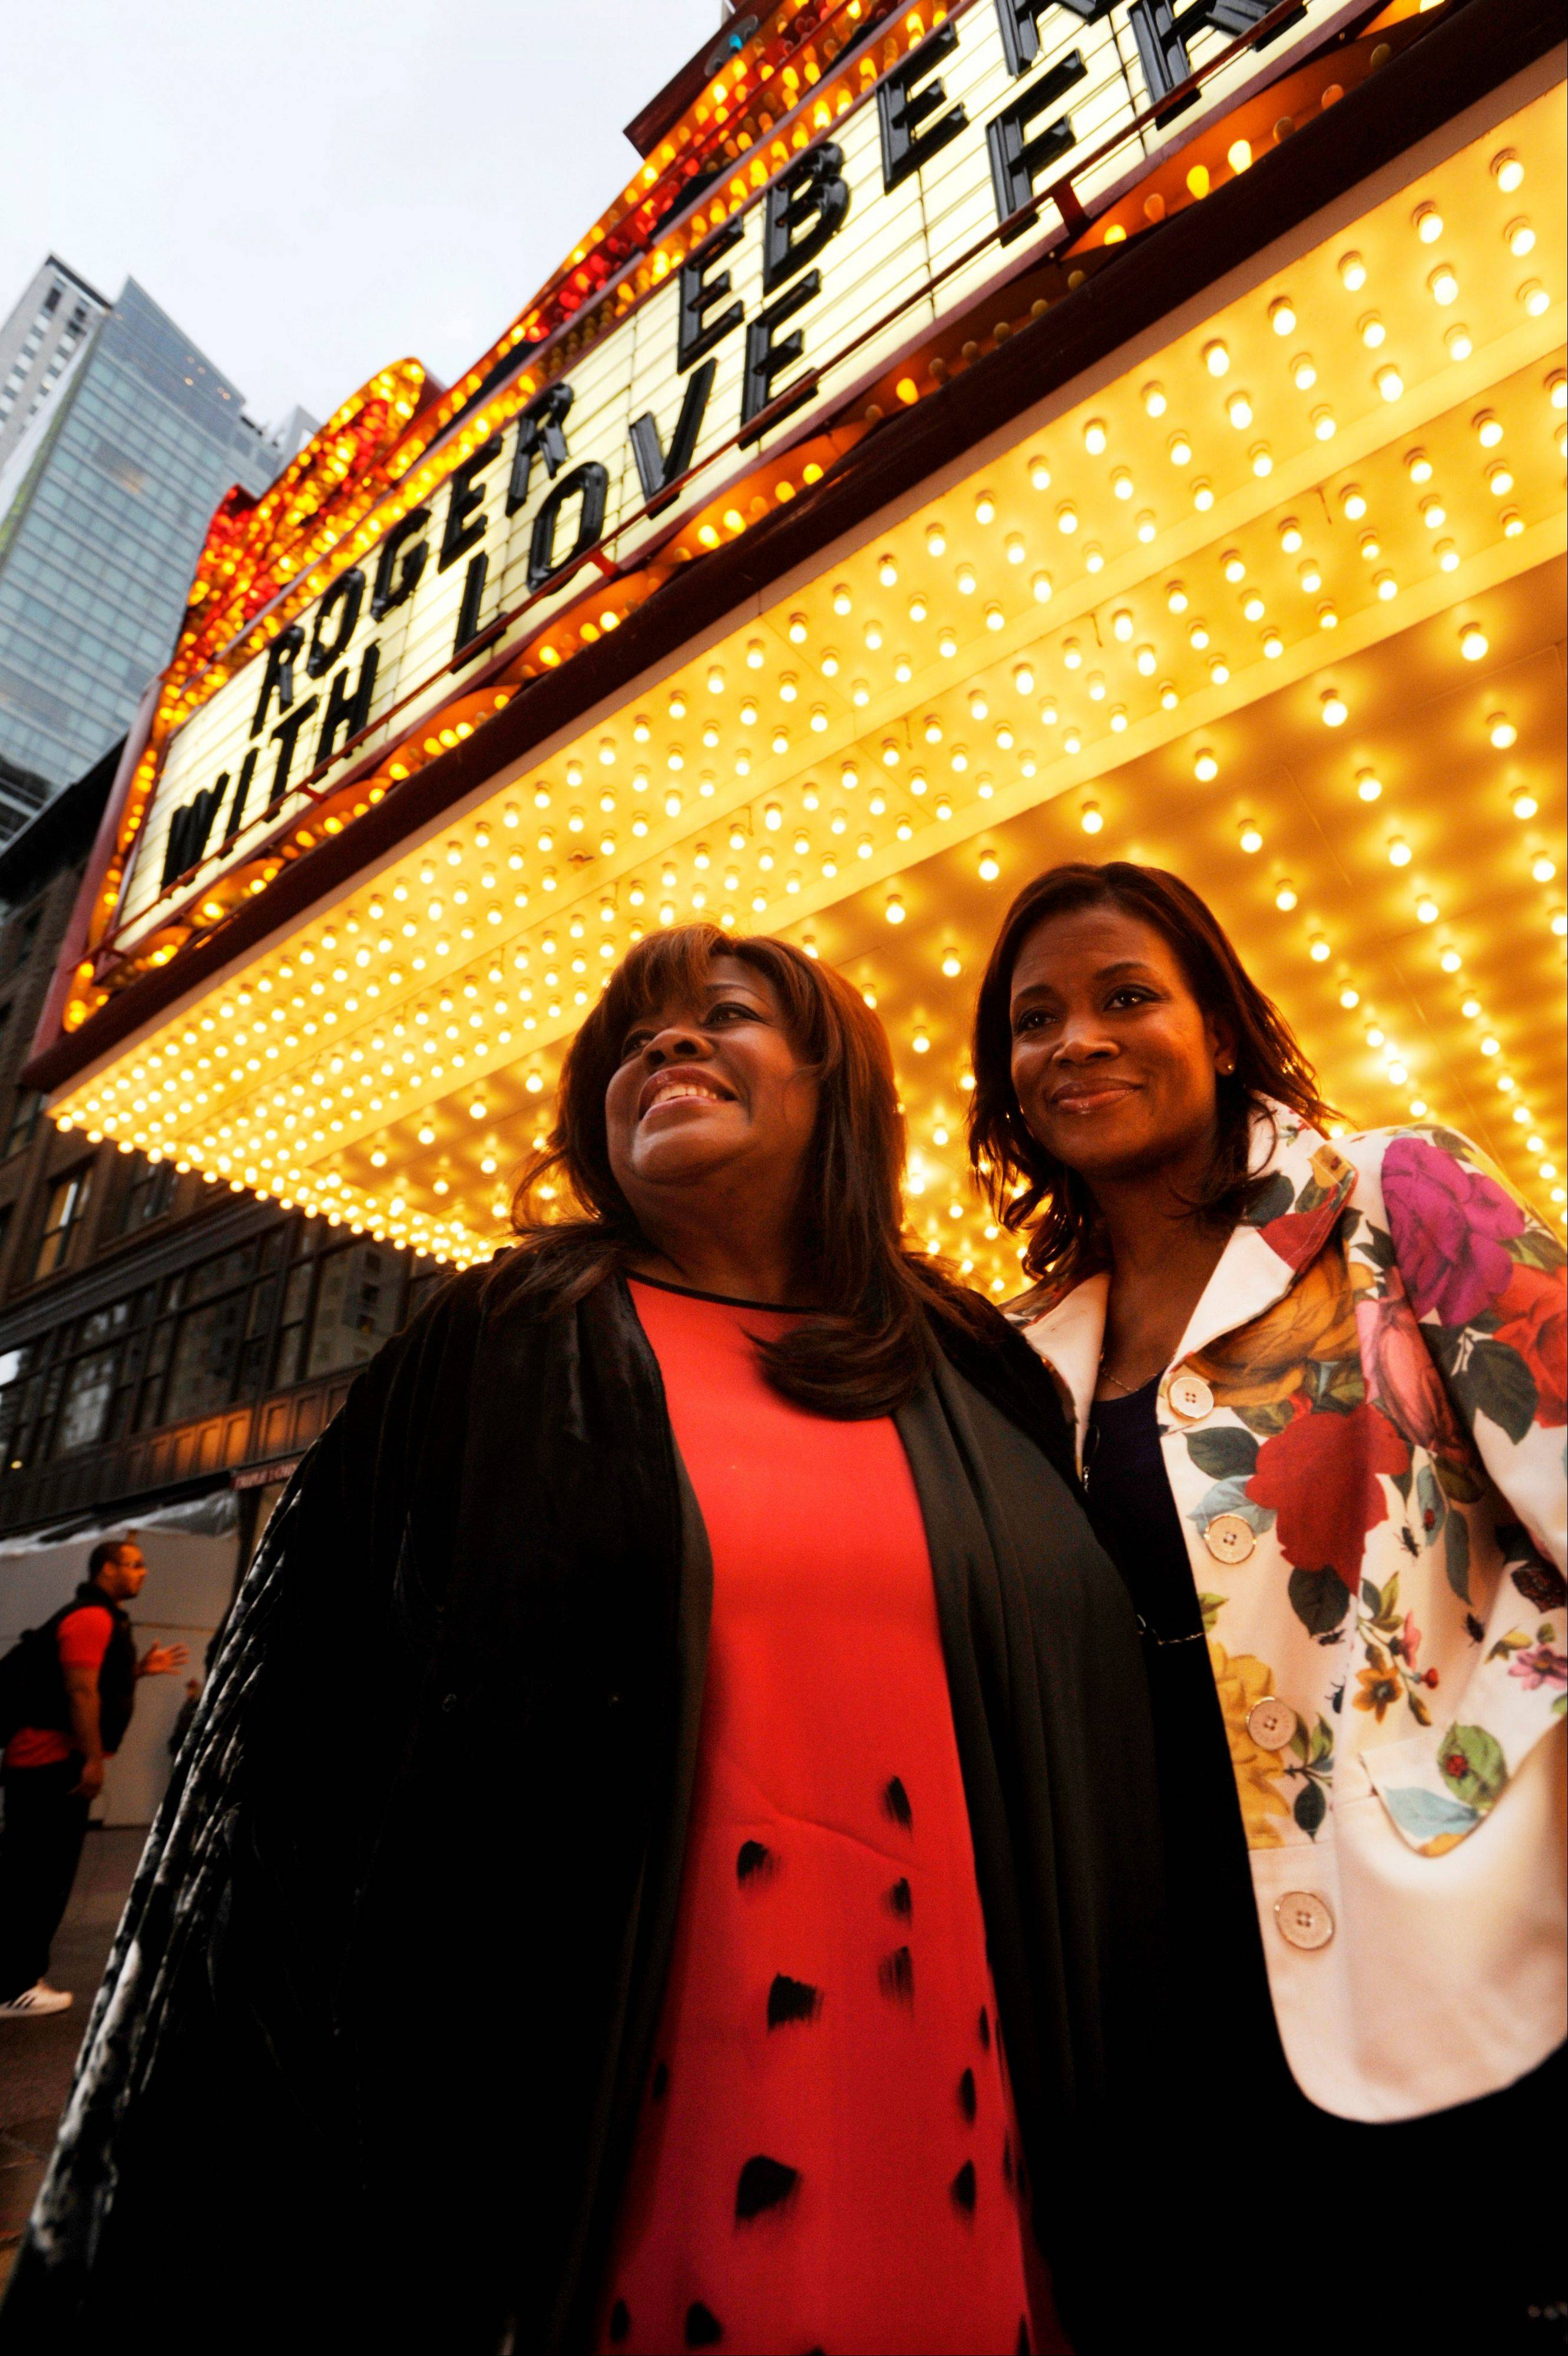 Roger Ebert's wife Chaz Ebert, left, and her daughter Sonia Evans, right, arrive at The Chicago Theater before a memorial for film critic Roger Ebert in Chicago, Thursday, April 11, 2013. The Pulitzer Prize winning critic died last week at the age of 70 after a long battle with cancer.